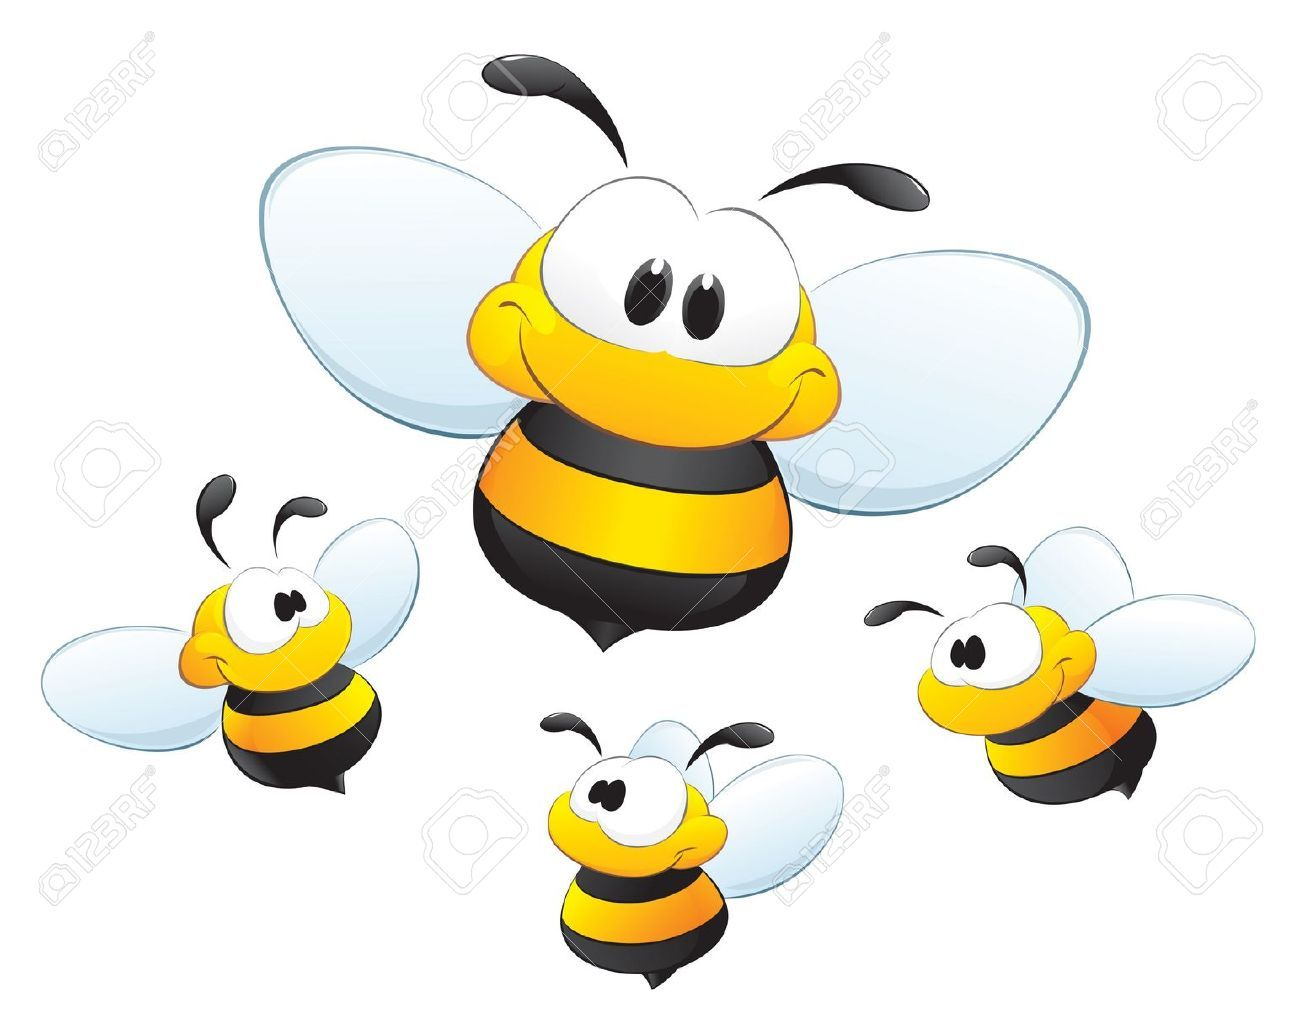 Cute cartoon bees for design element cake figures